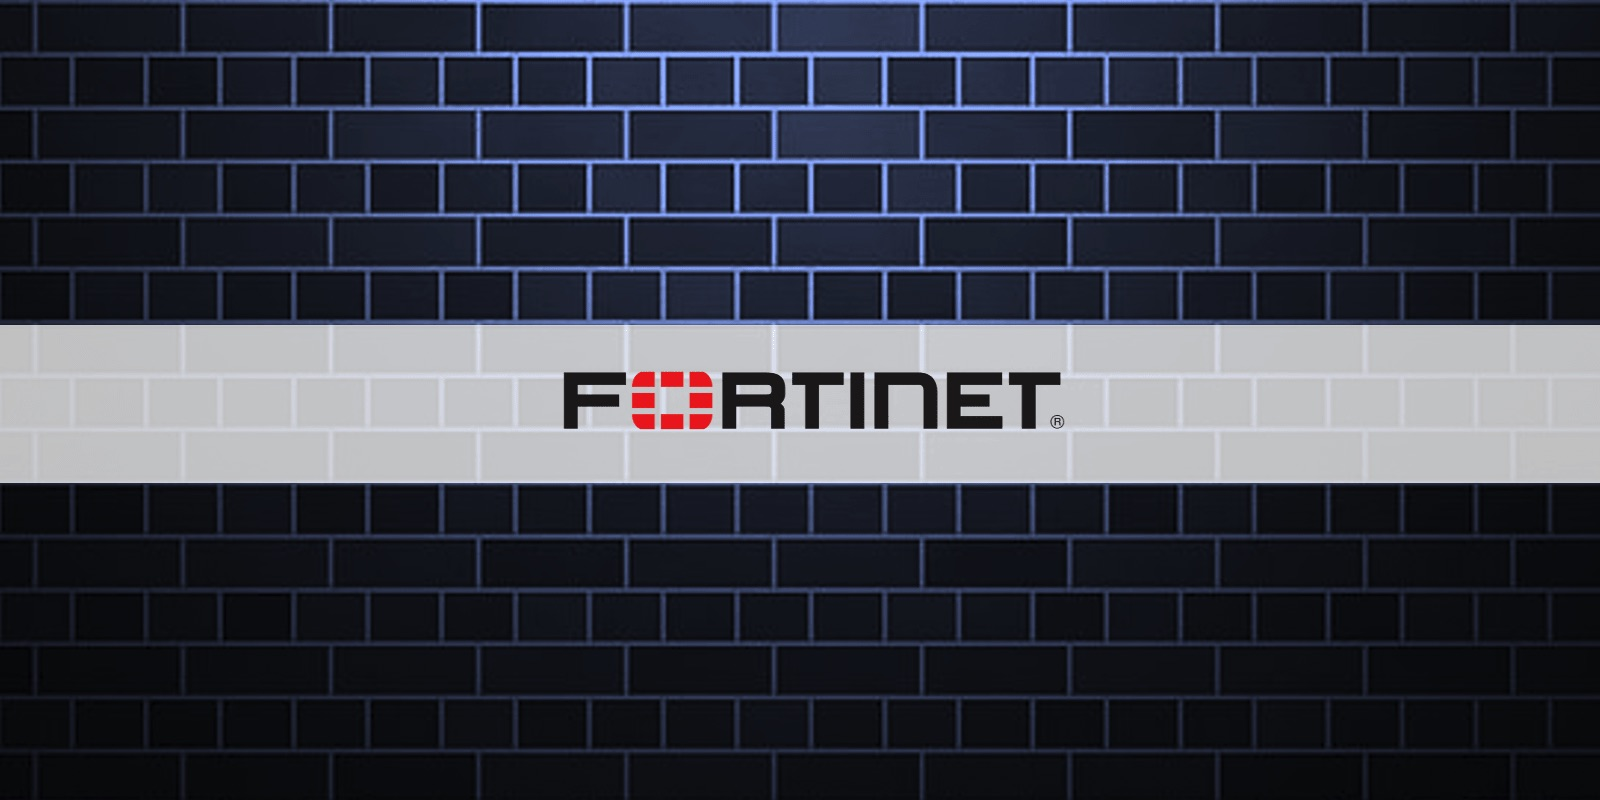 fortinet blue